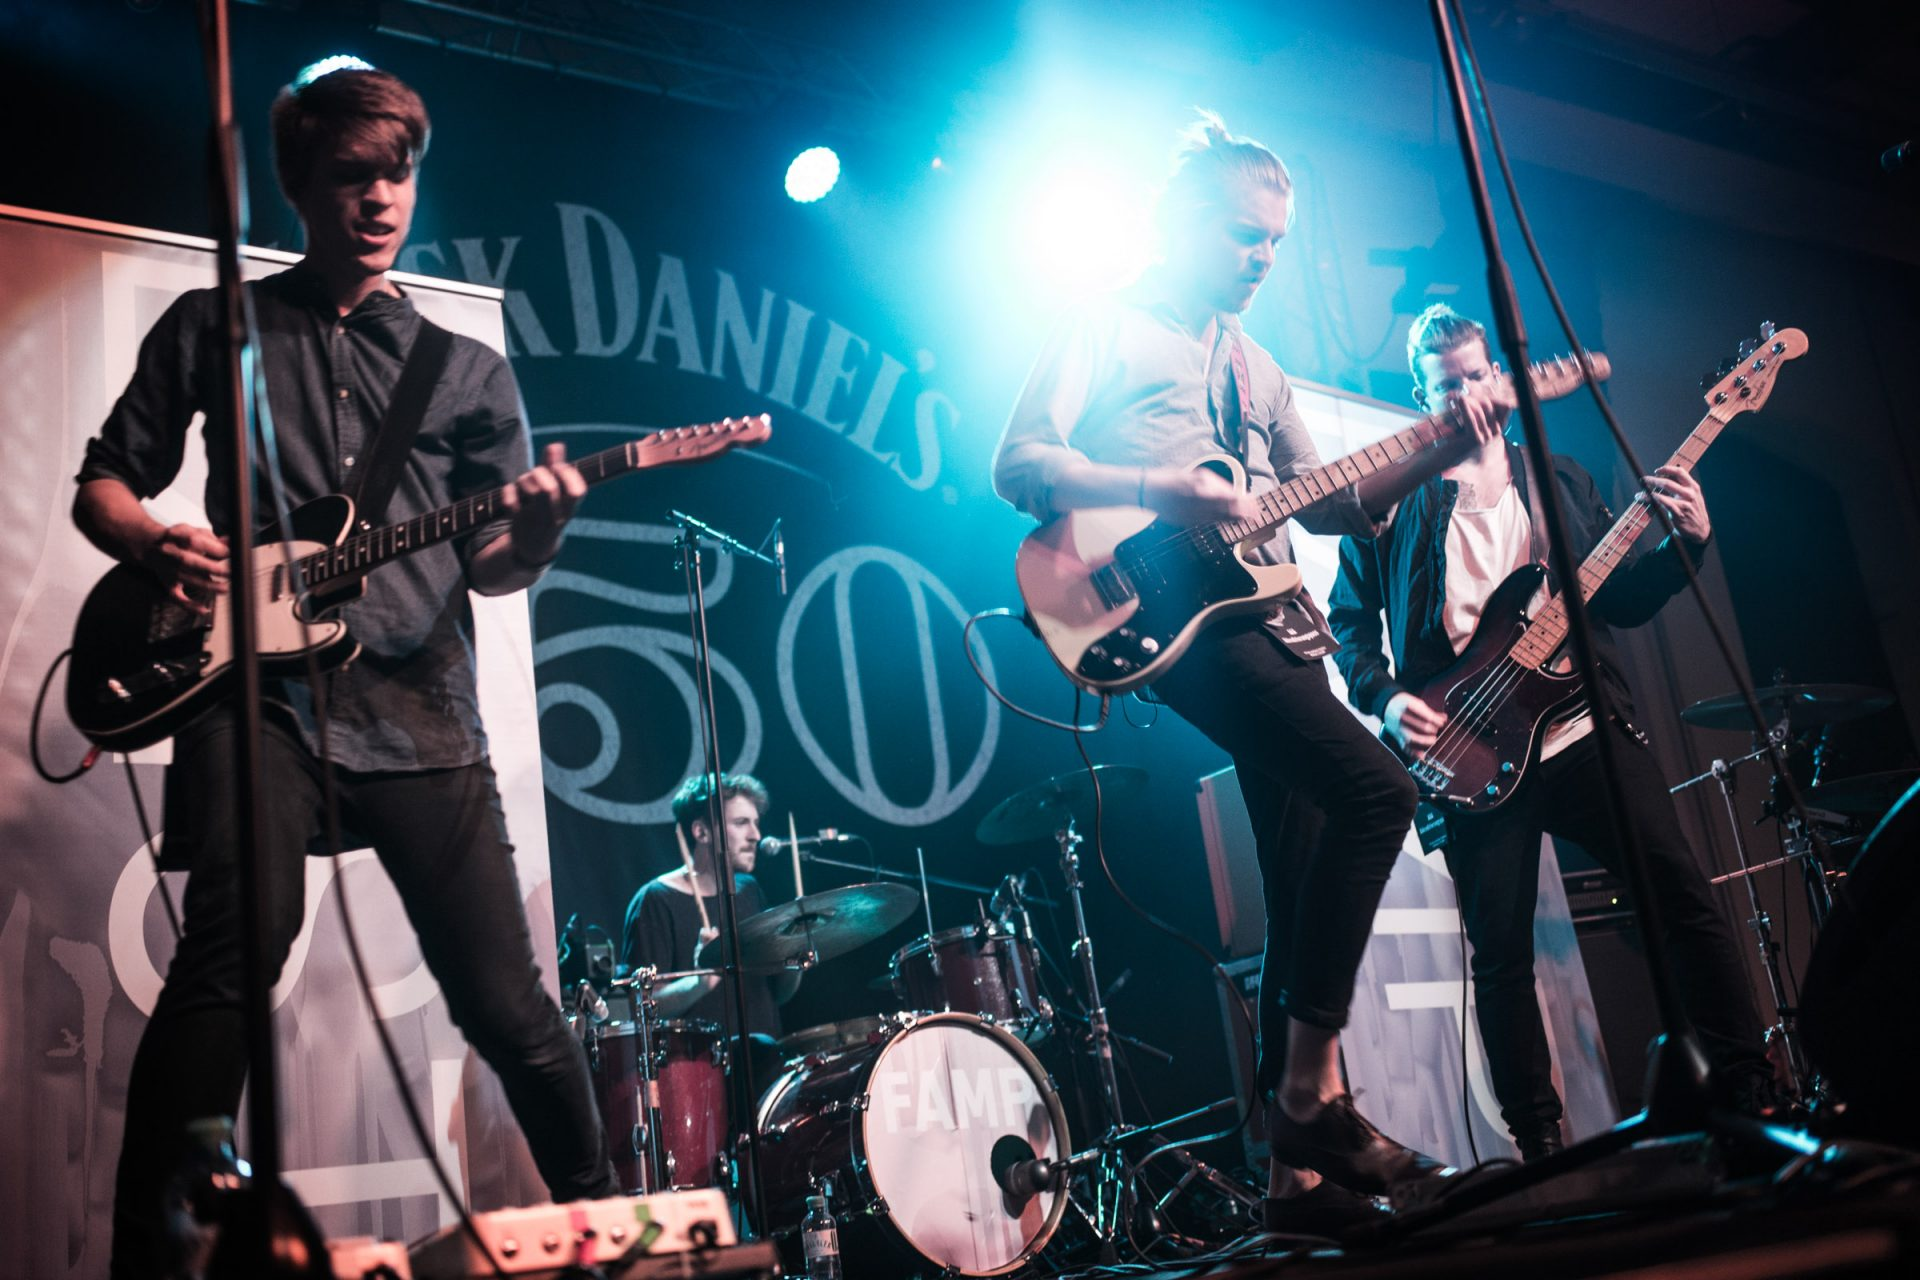 Jack Daniel's #D150 Birthday Party | (c) Philipp Schuster